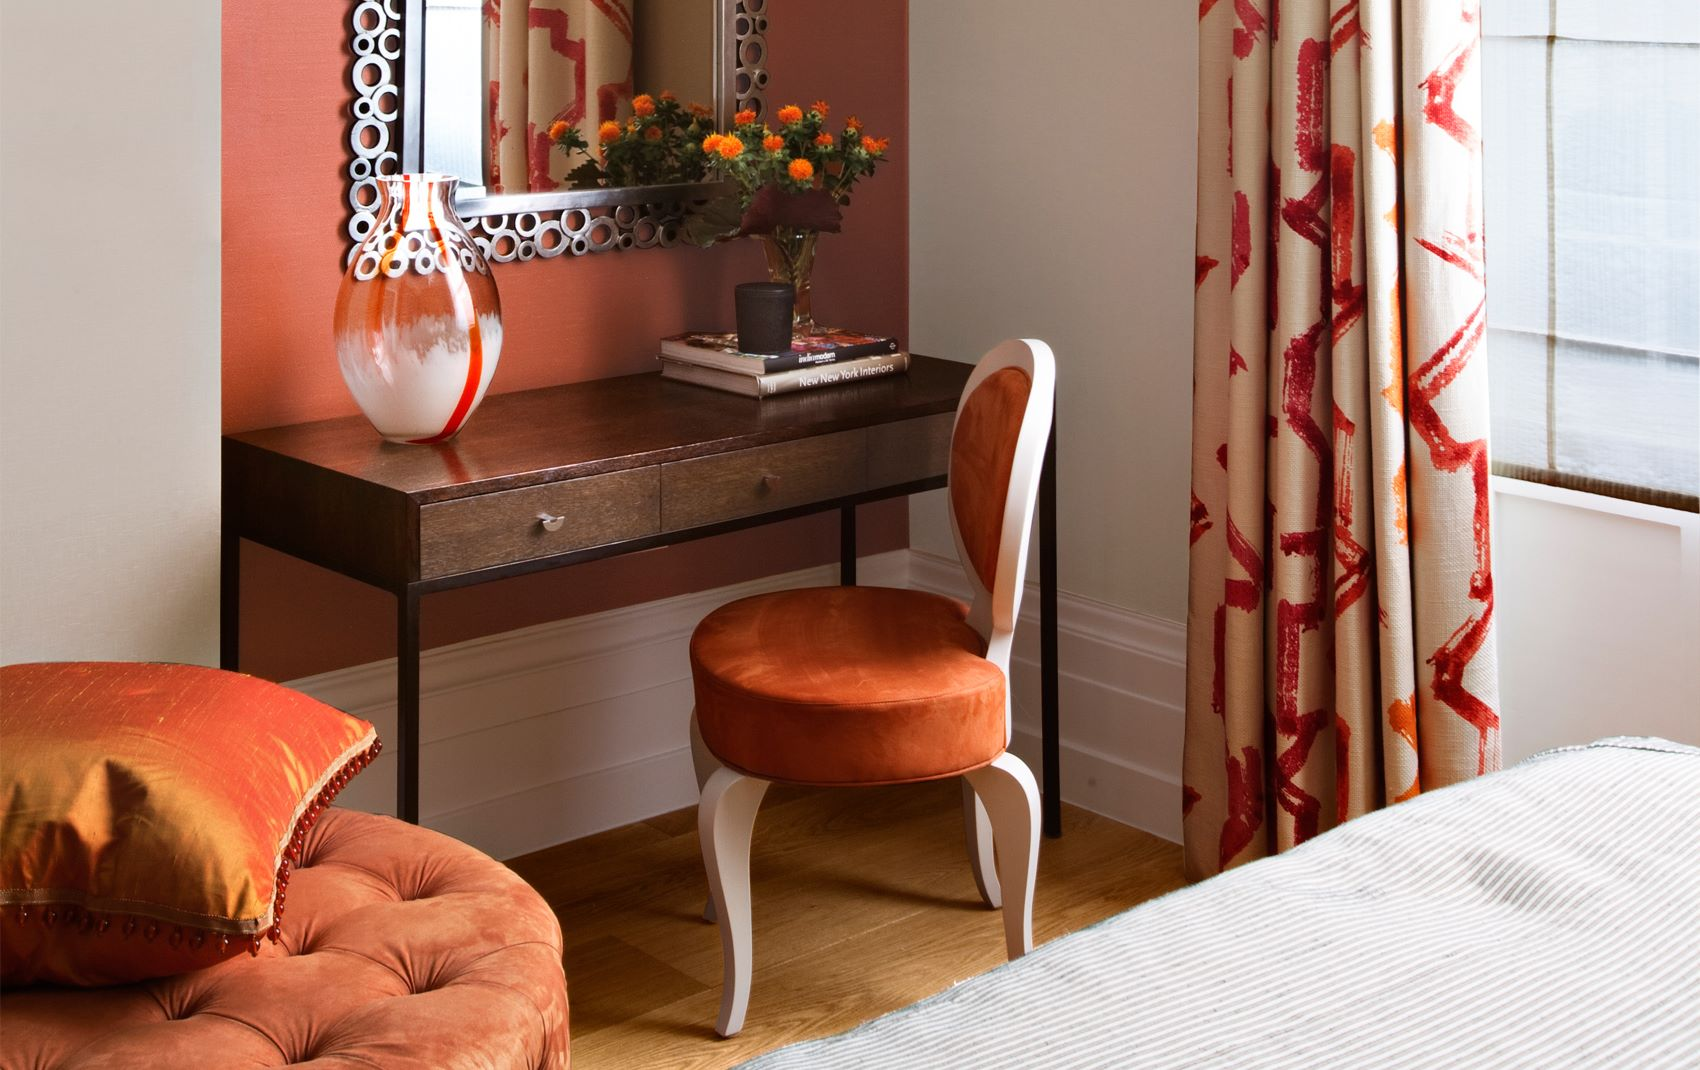 kensington mansion flat - orange chair with decorative desk